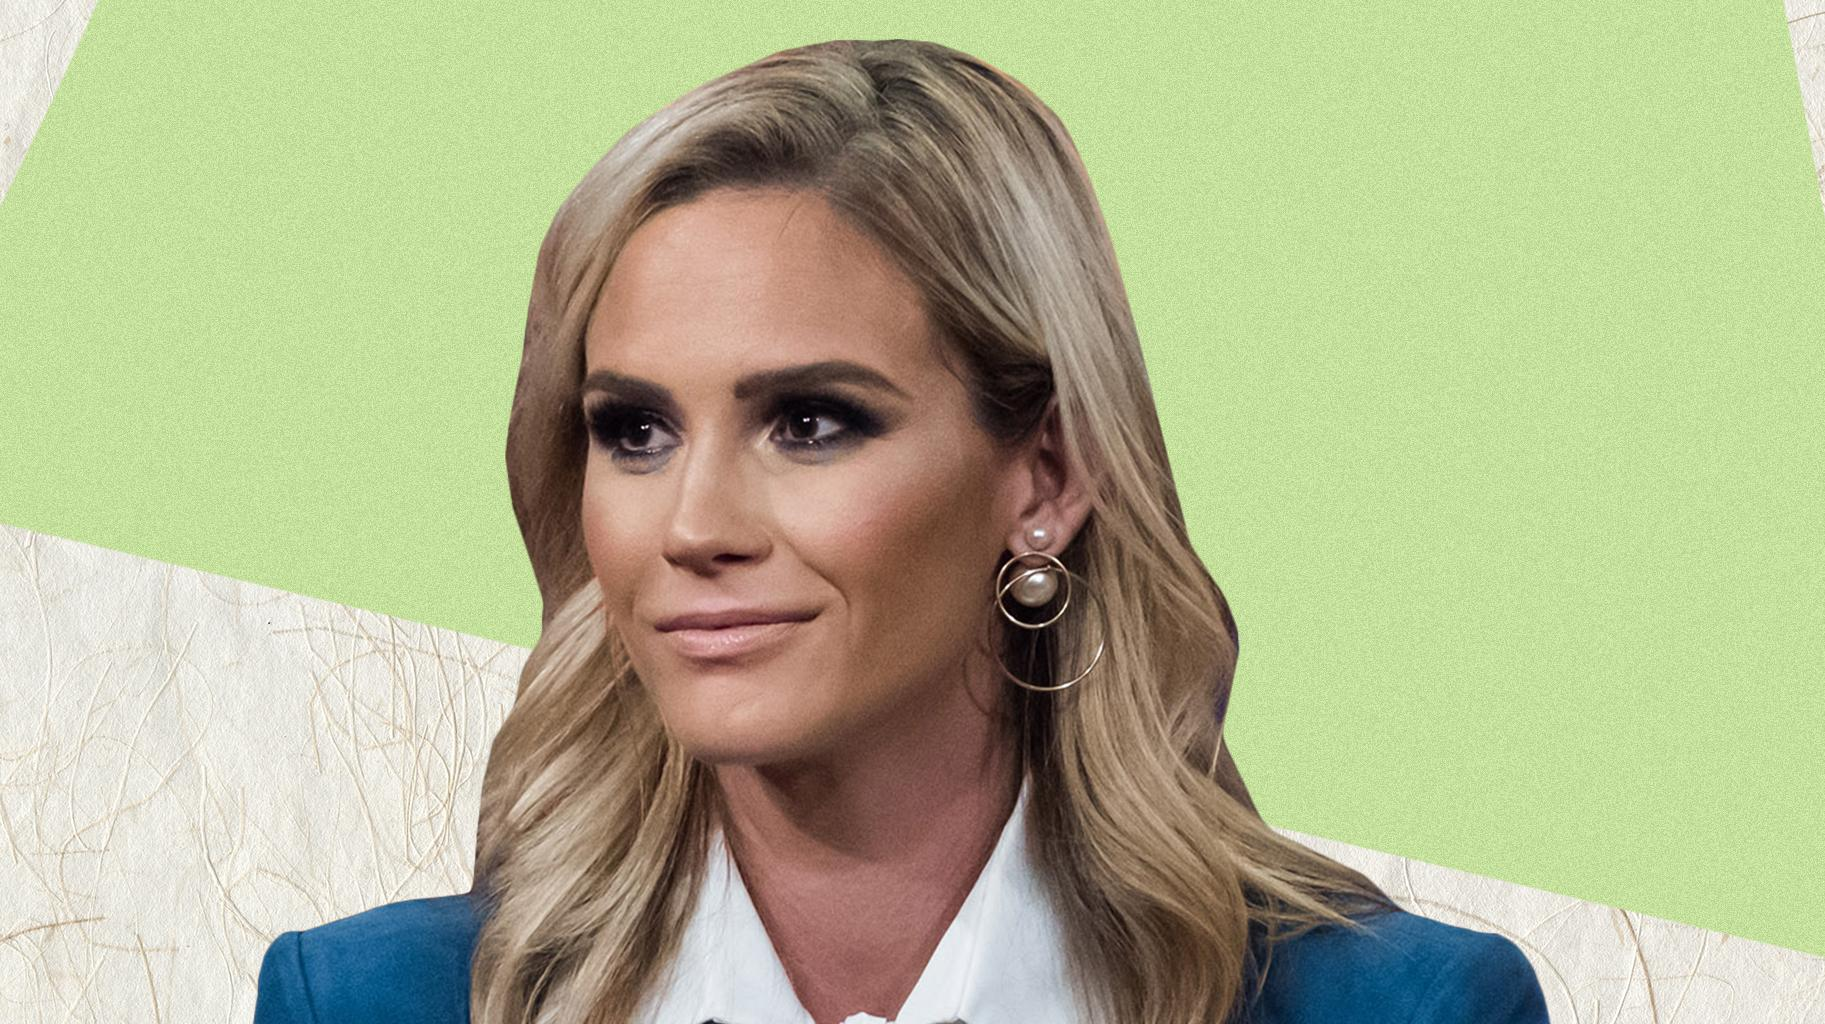 Meghan King Edmonds Shows Off Her 'Baby Bump' In New Video Following Her Husband's Cheating Scandal